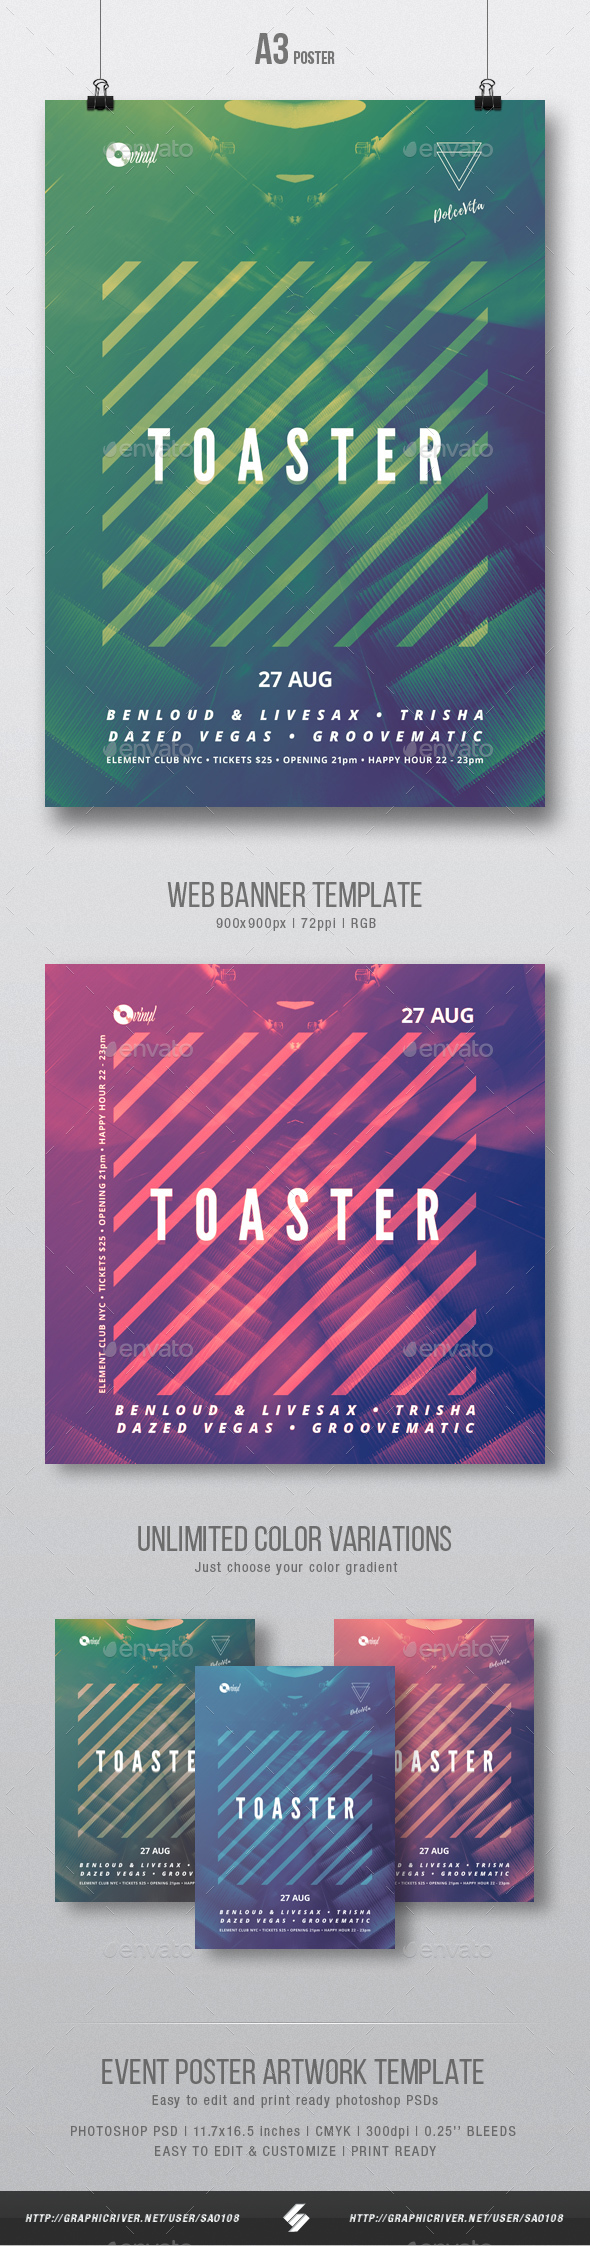 Toaster - Minimal Party Flyer / Poster Artwork Template A3 - Clubs & Parties Events